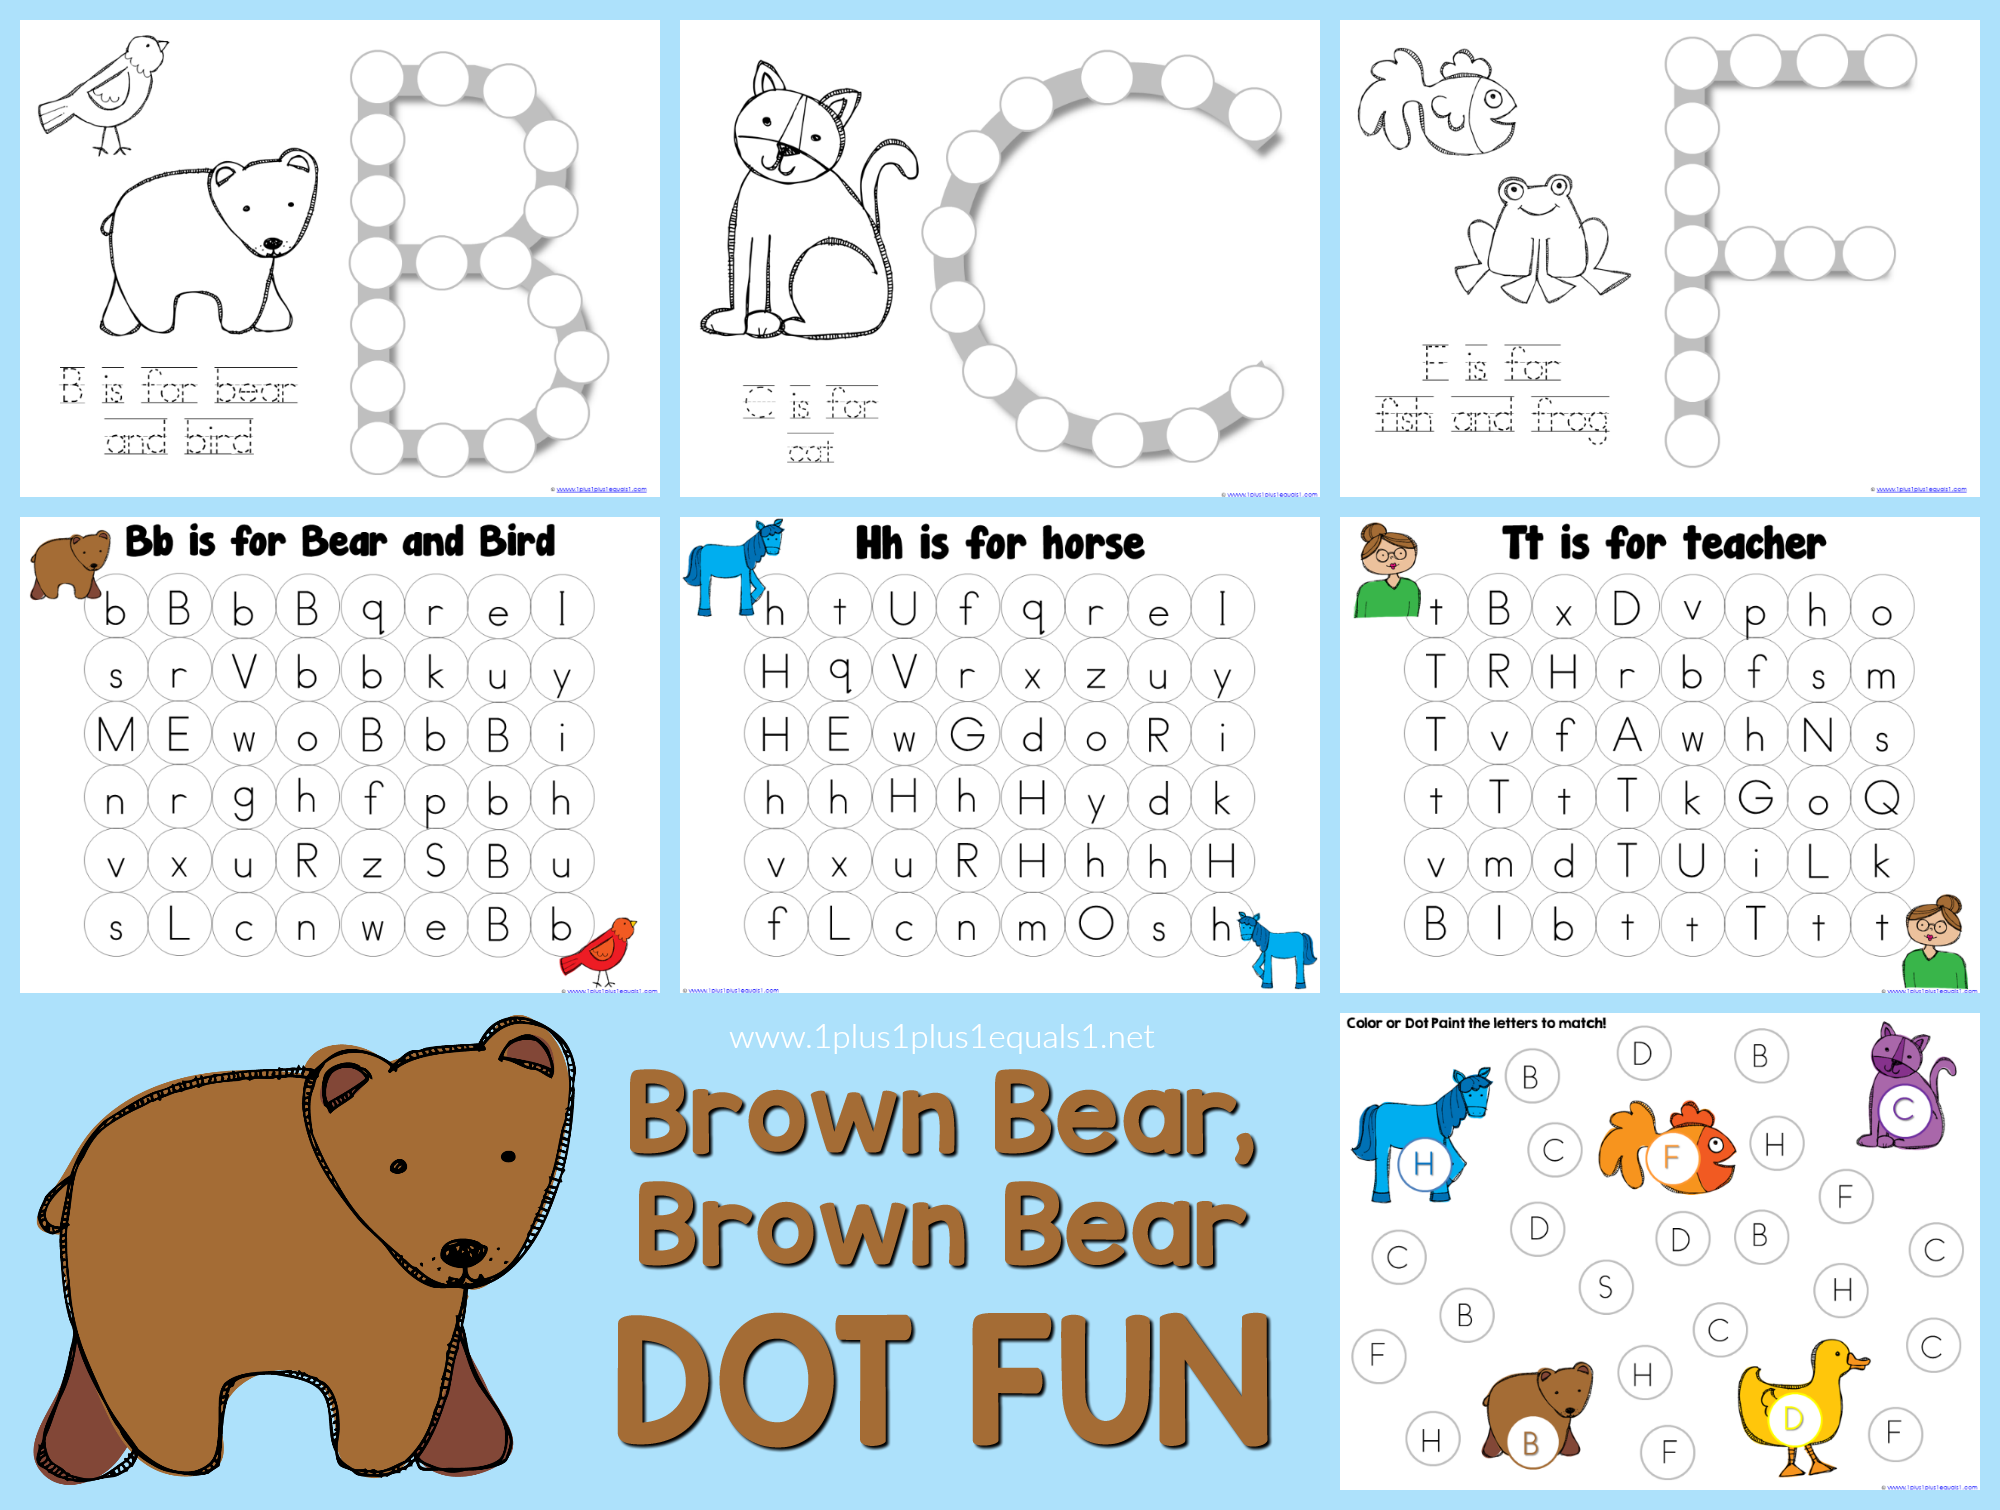 Big Brown Bear Coloring Page | Teddy bear coloring pages, Bear ... | 1510x2000